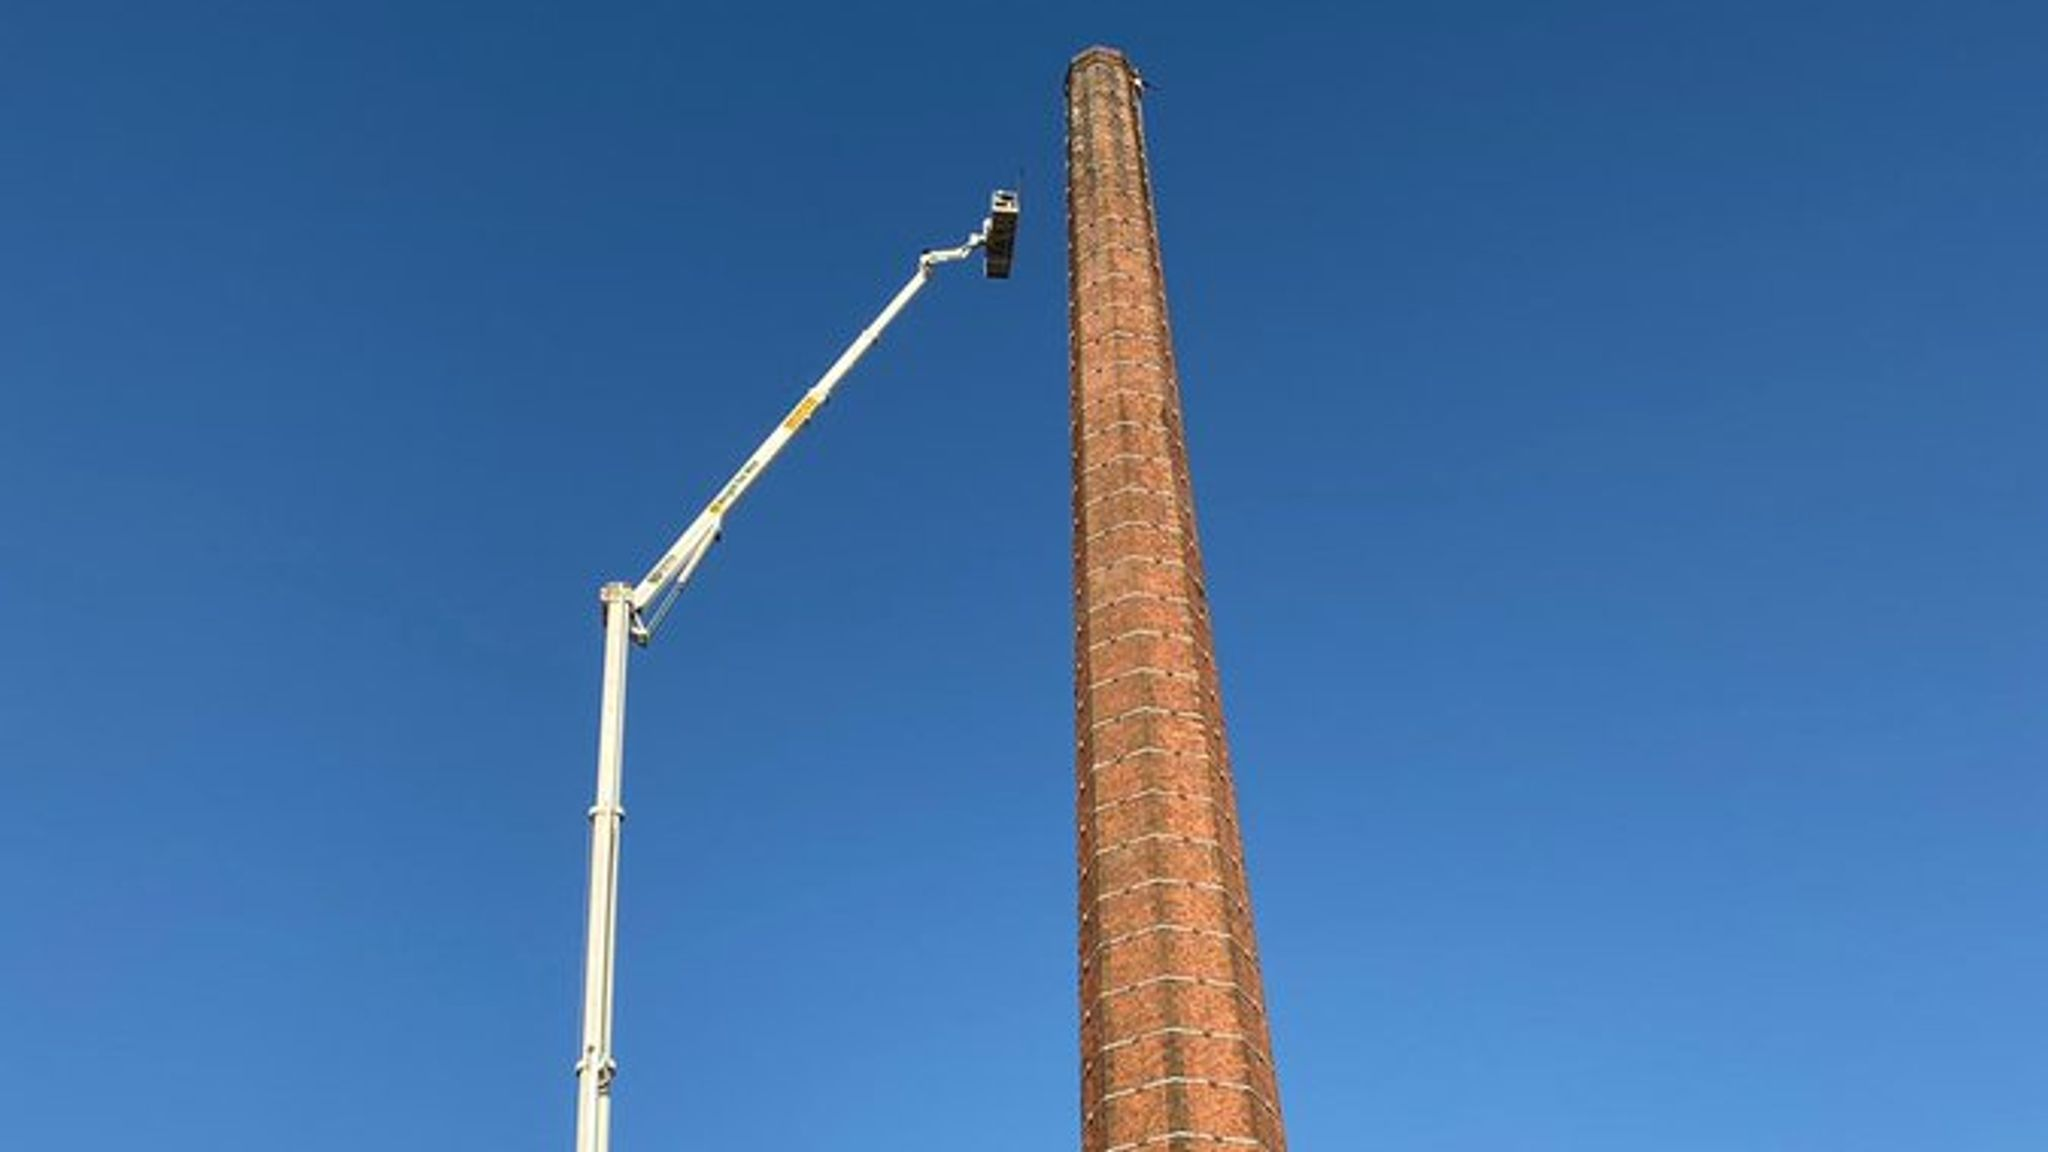 Man trapped at top of chimney in Carlisle has died, police confirm